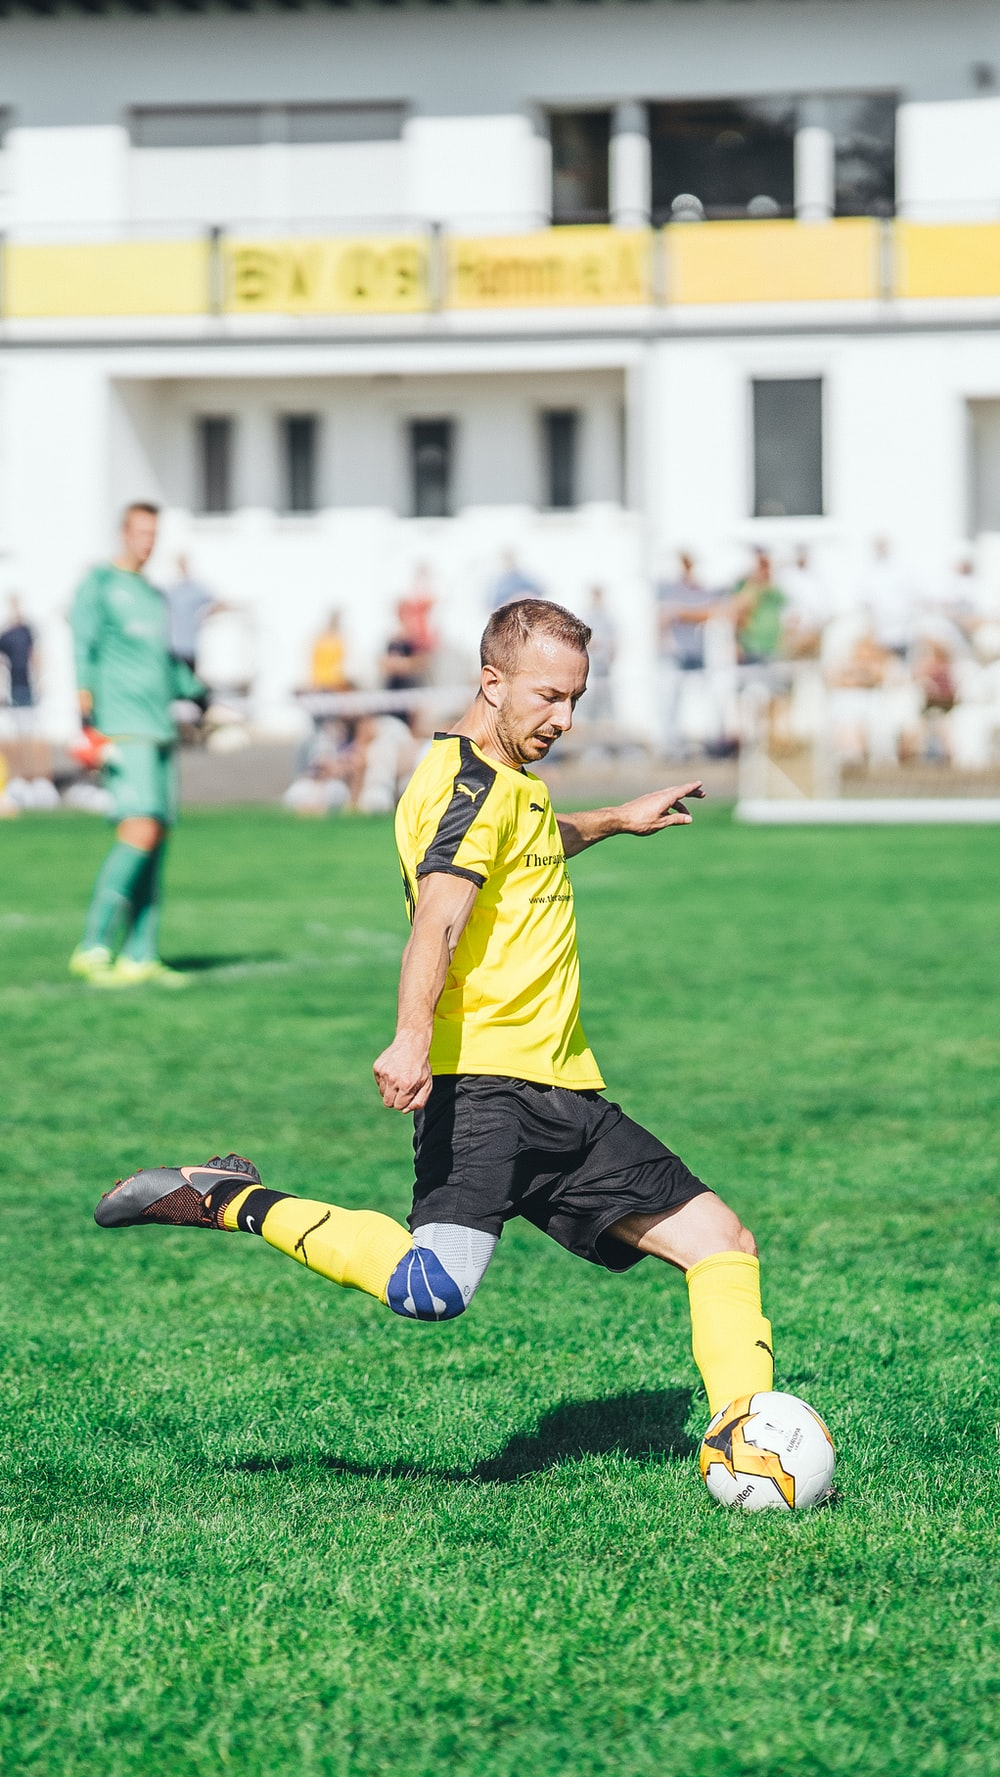 boy in yellow and black soccer jersey kicking soccer ball on green grass field during daytime